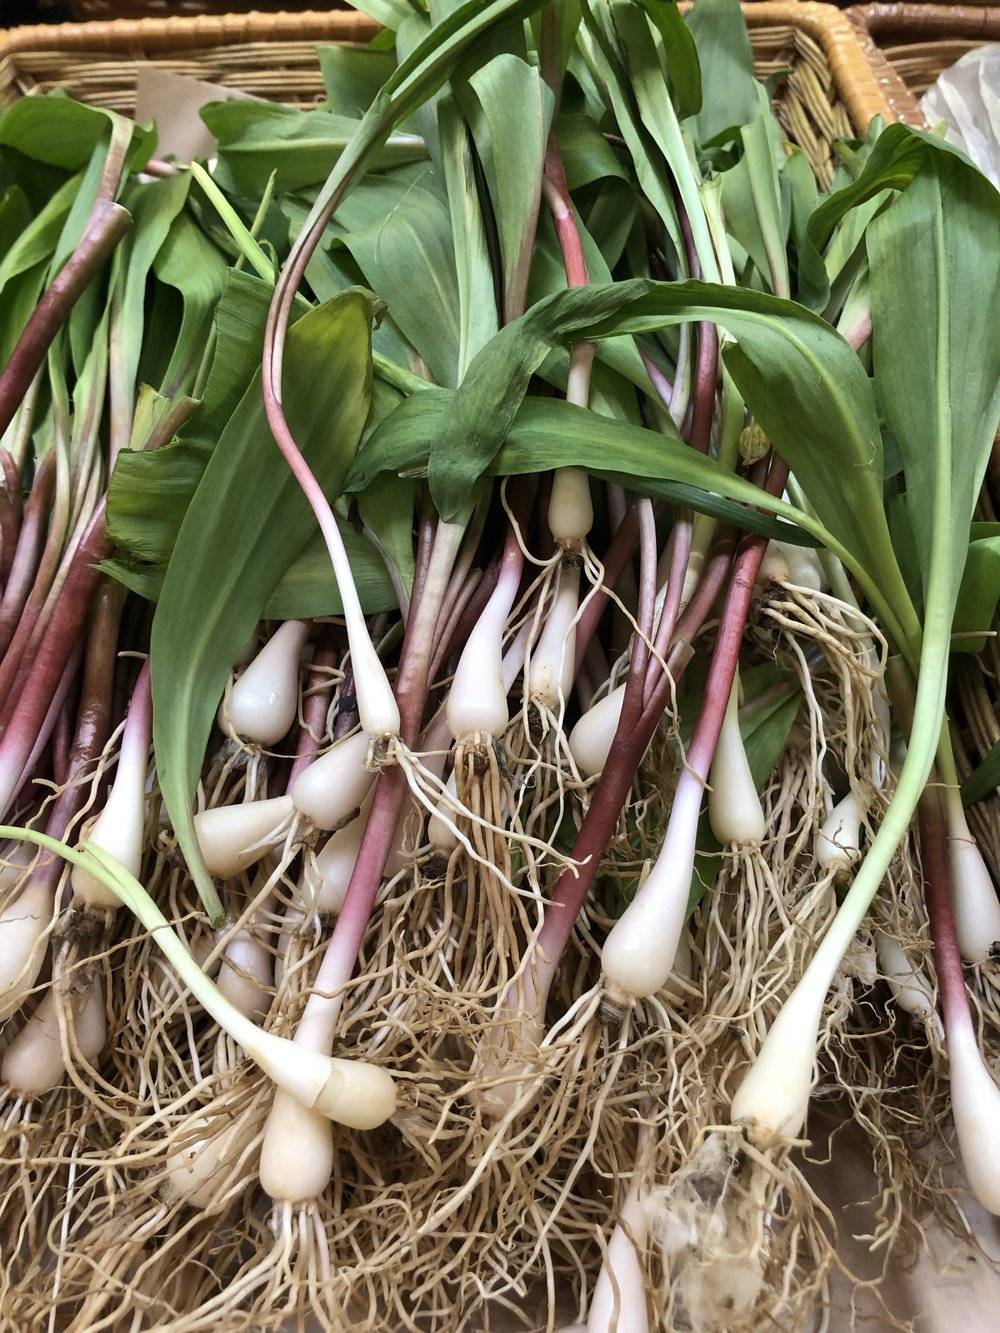 Ramps are wild leeks foraged in shady wooded areas. They are only available for a few more days this year. Enjoy them while you can!